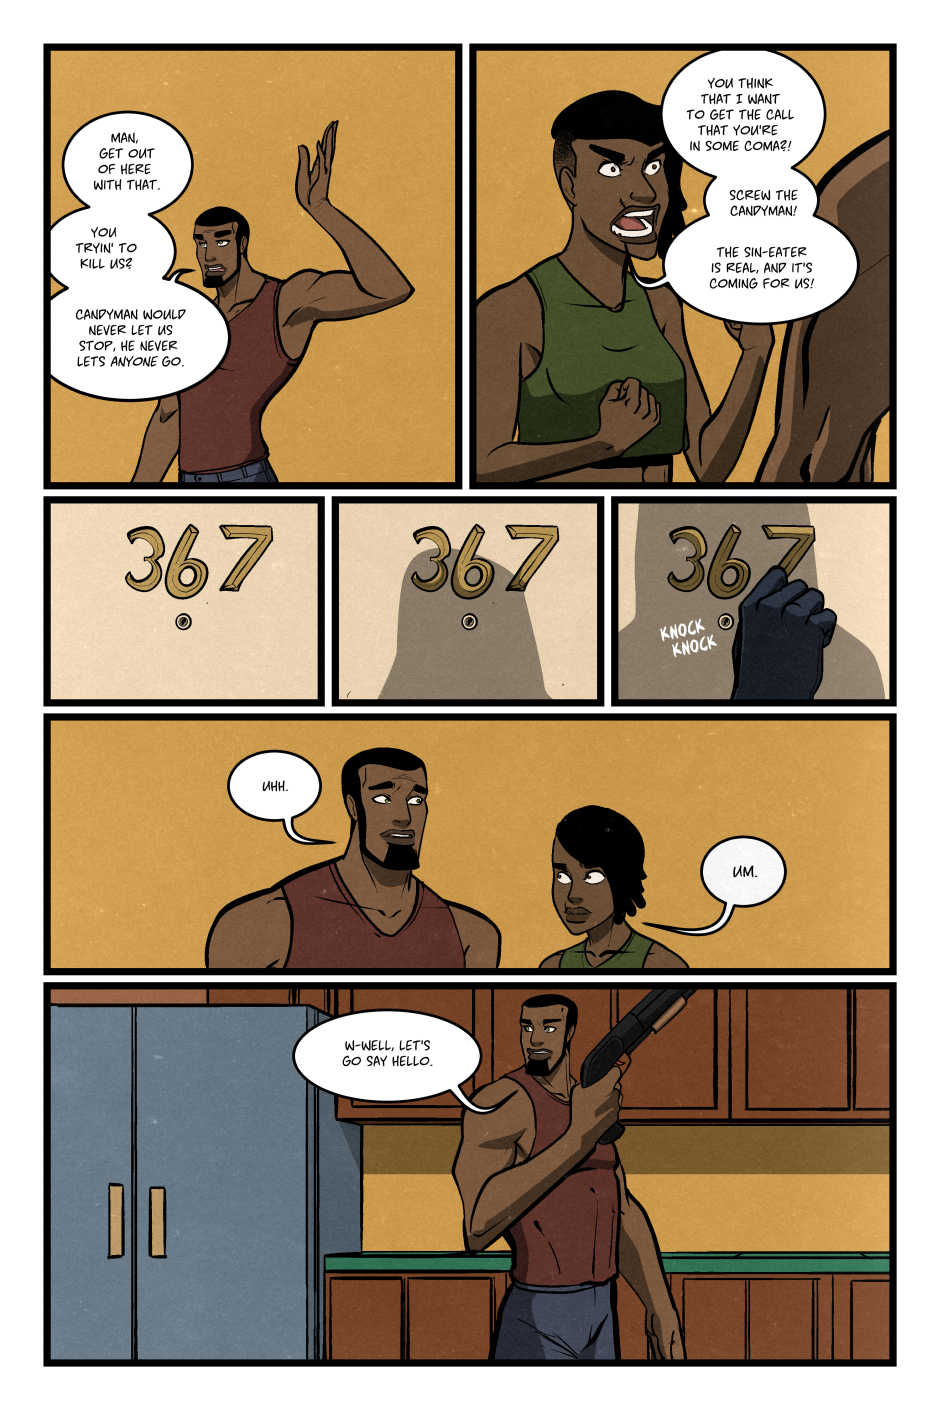 ToW01pg04